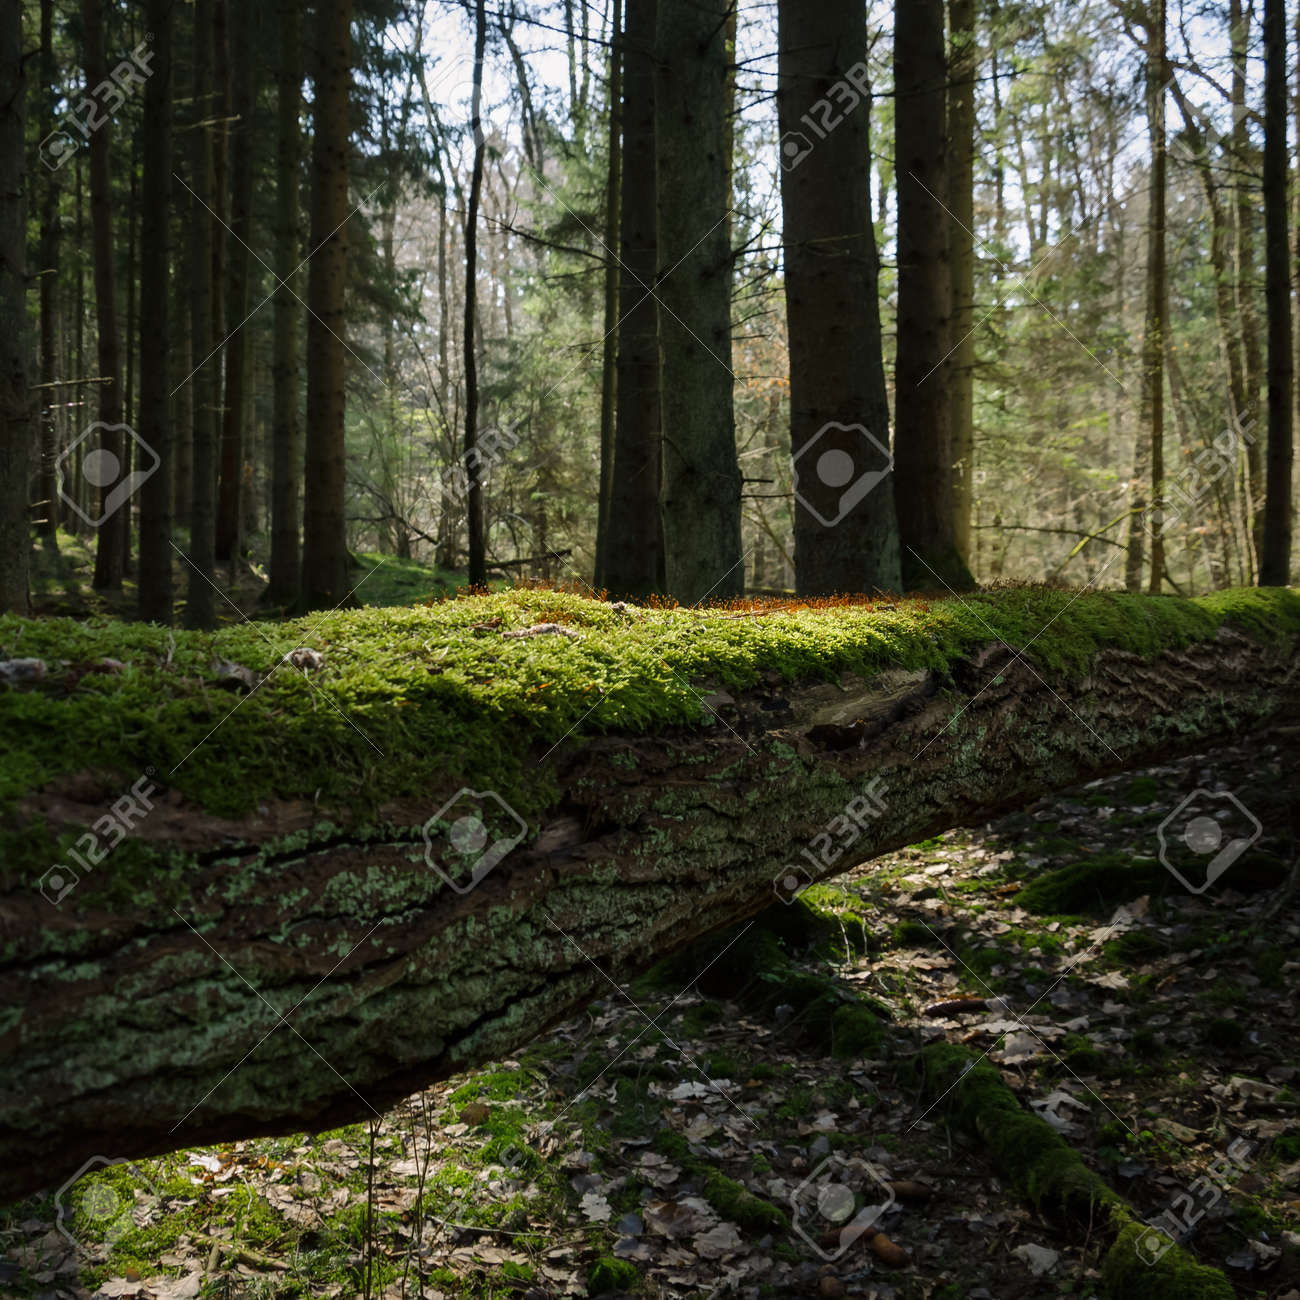 FOREST IN THE MORNING SUN - Blooming moss on a fallen tree - 168477659